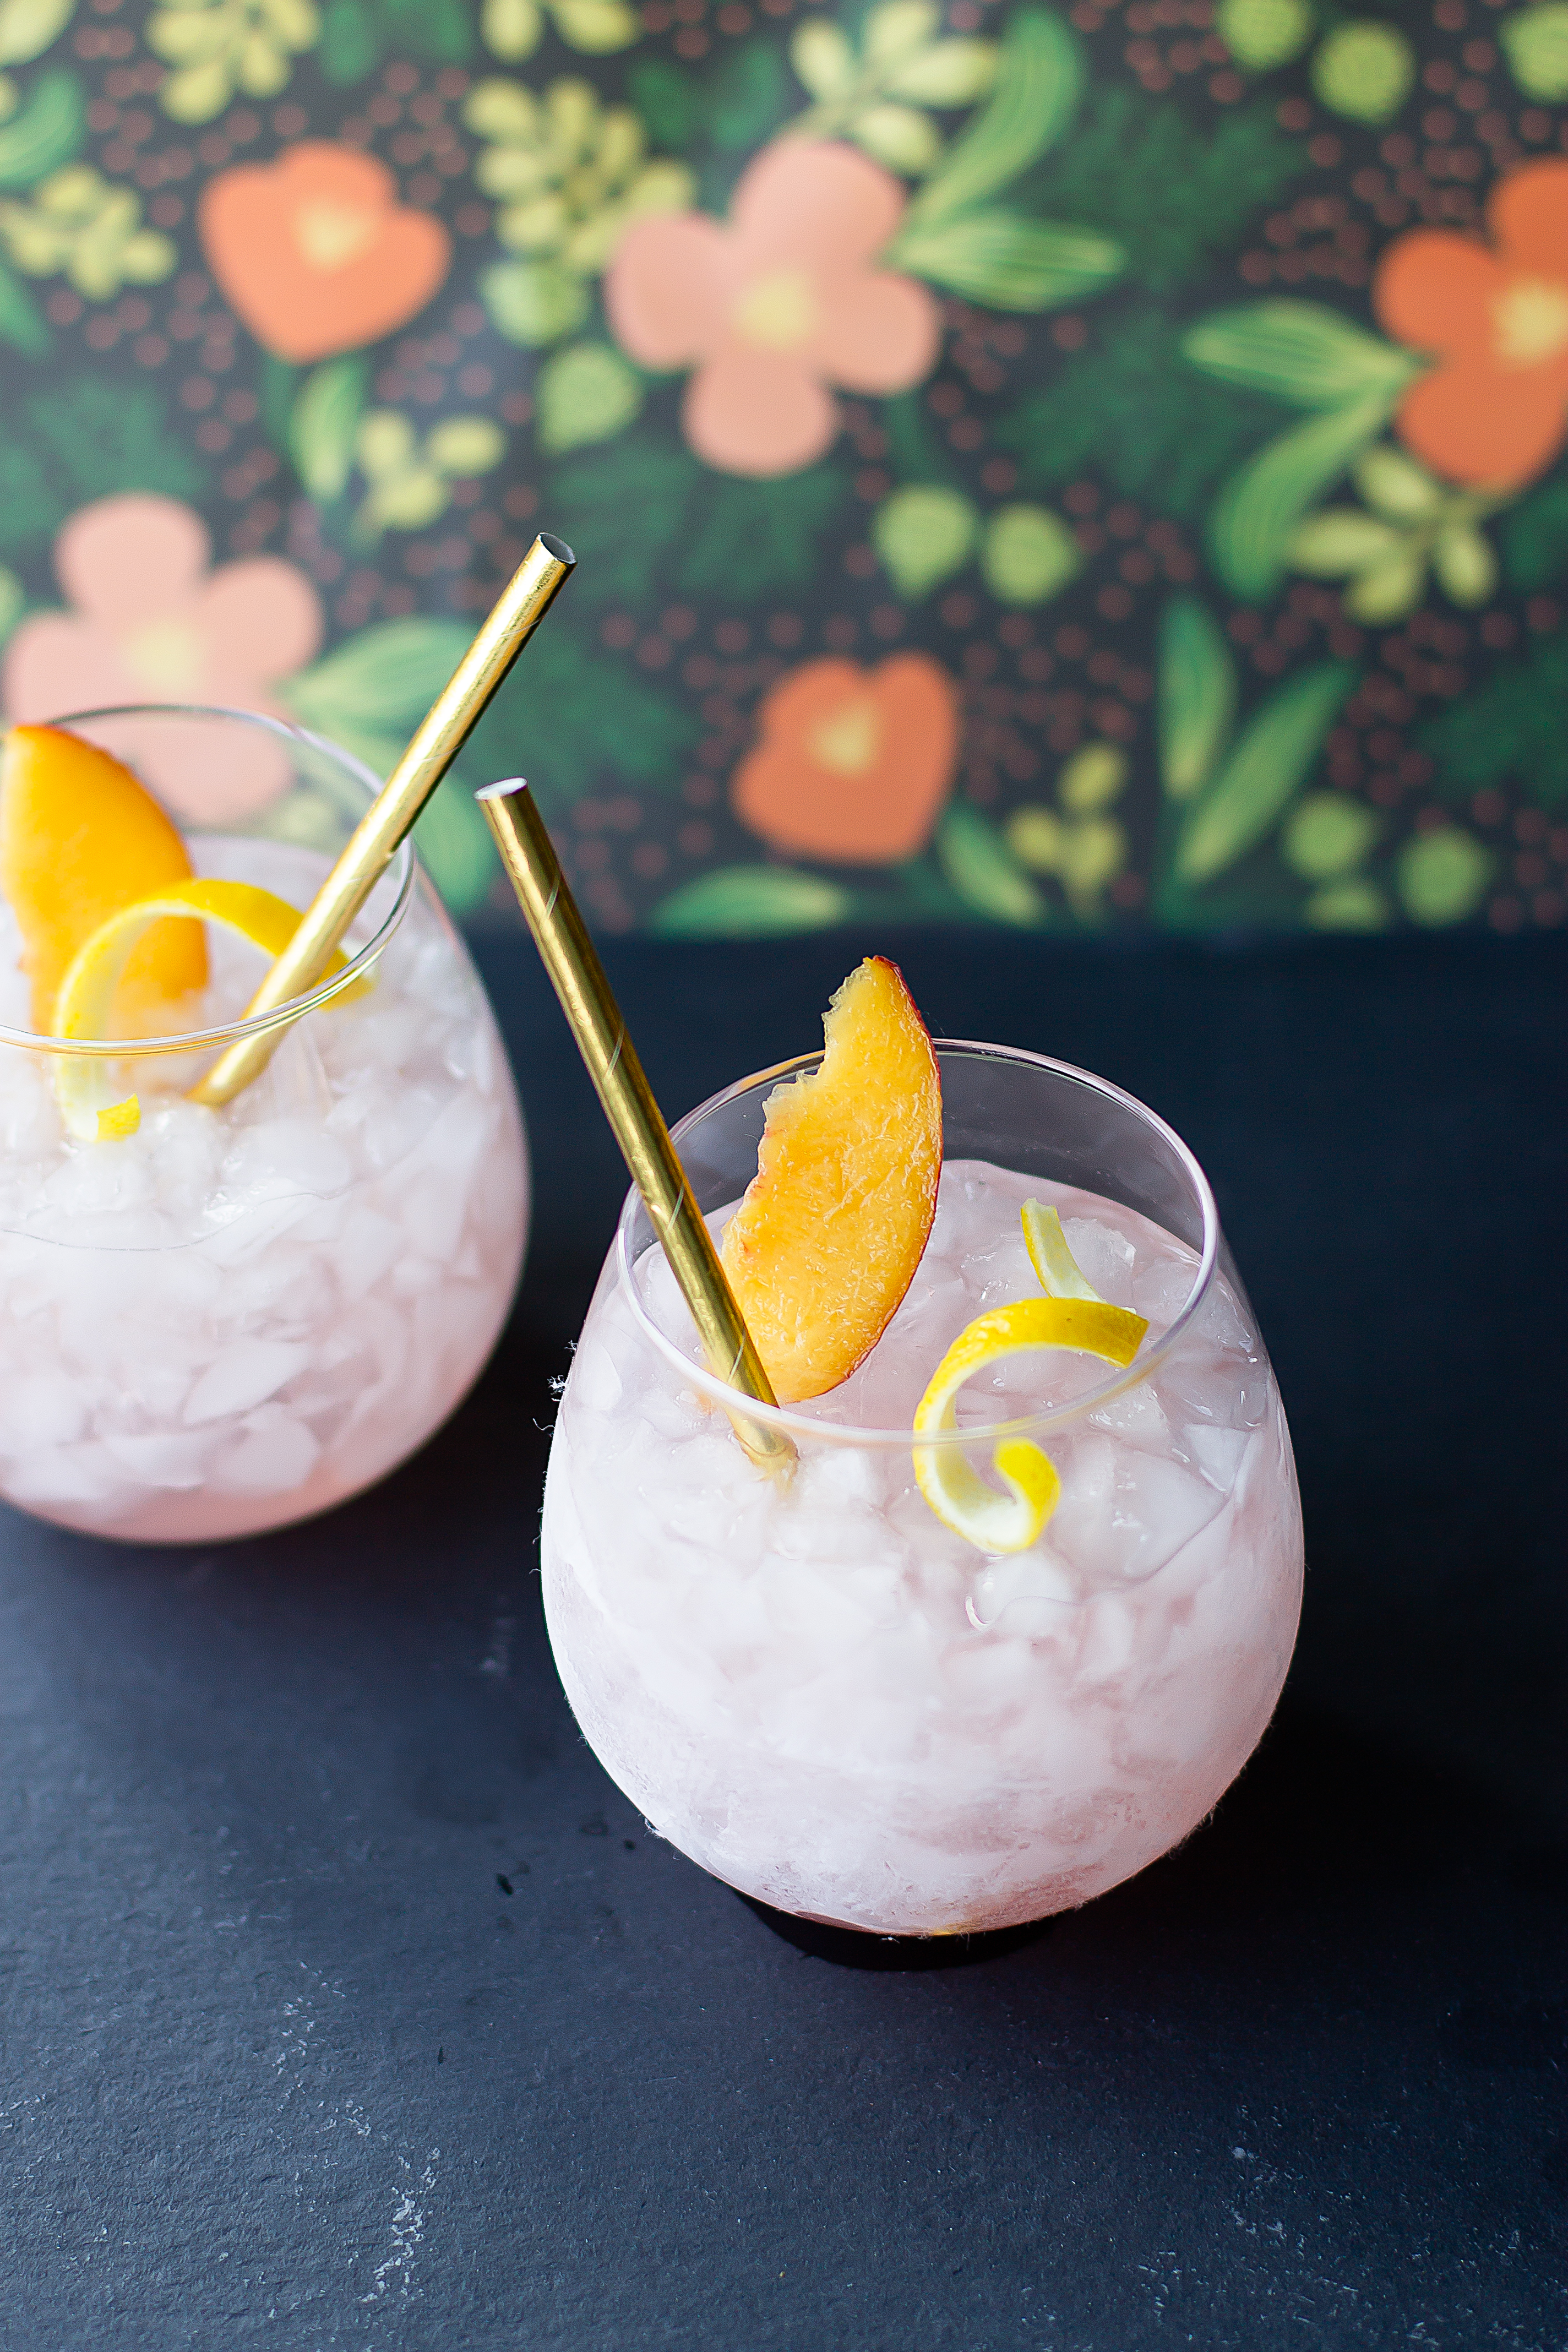 Peach Cardamom Vodka Crush Cocktail Recipe With Lime And